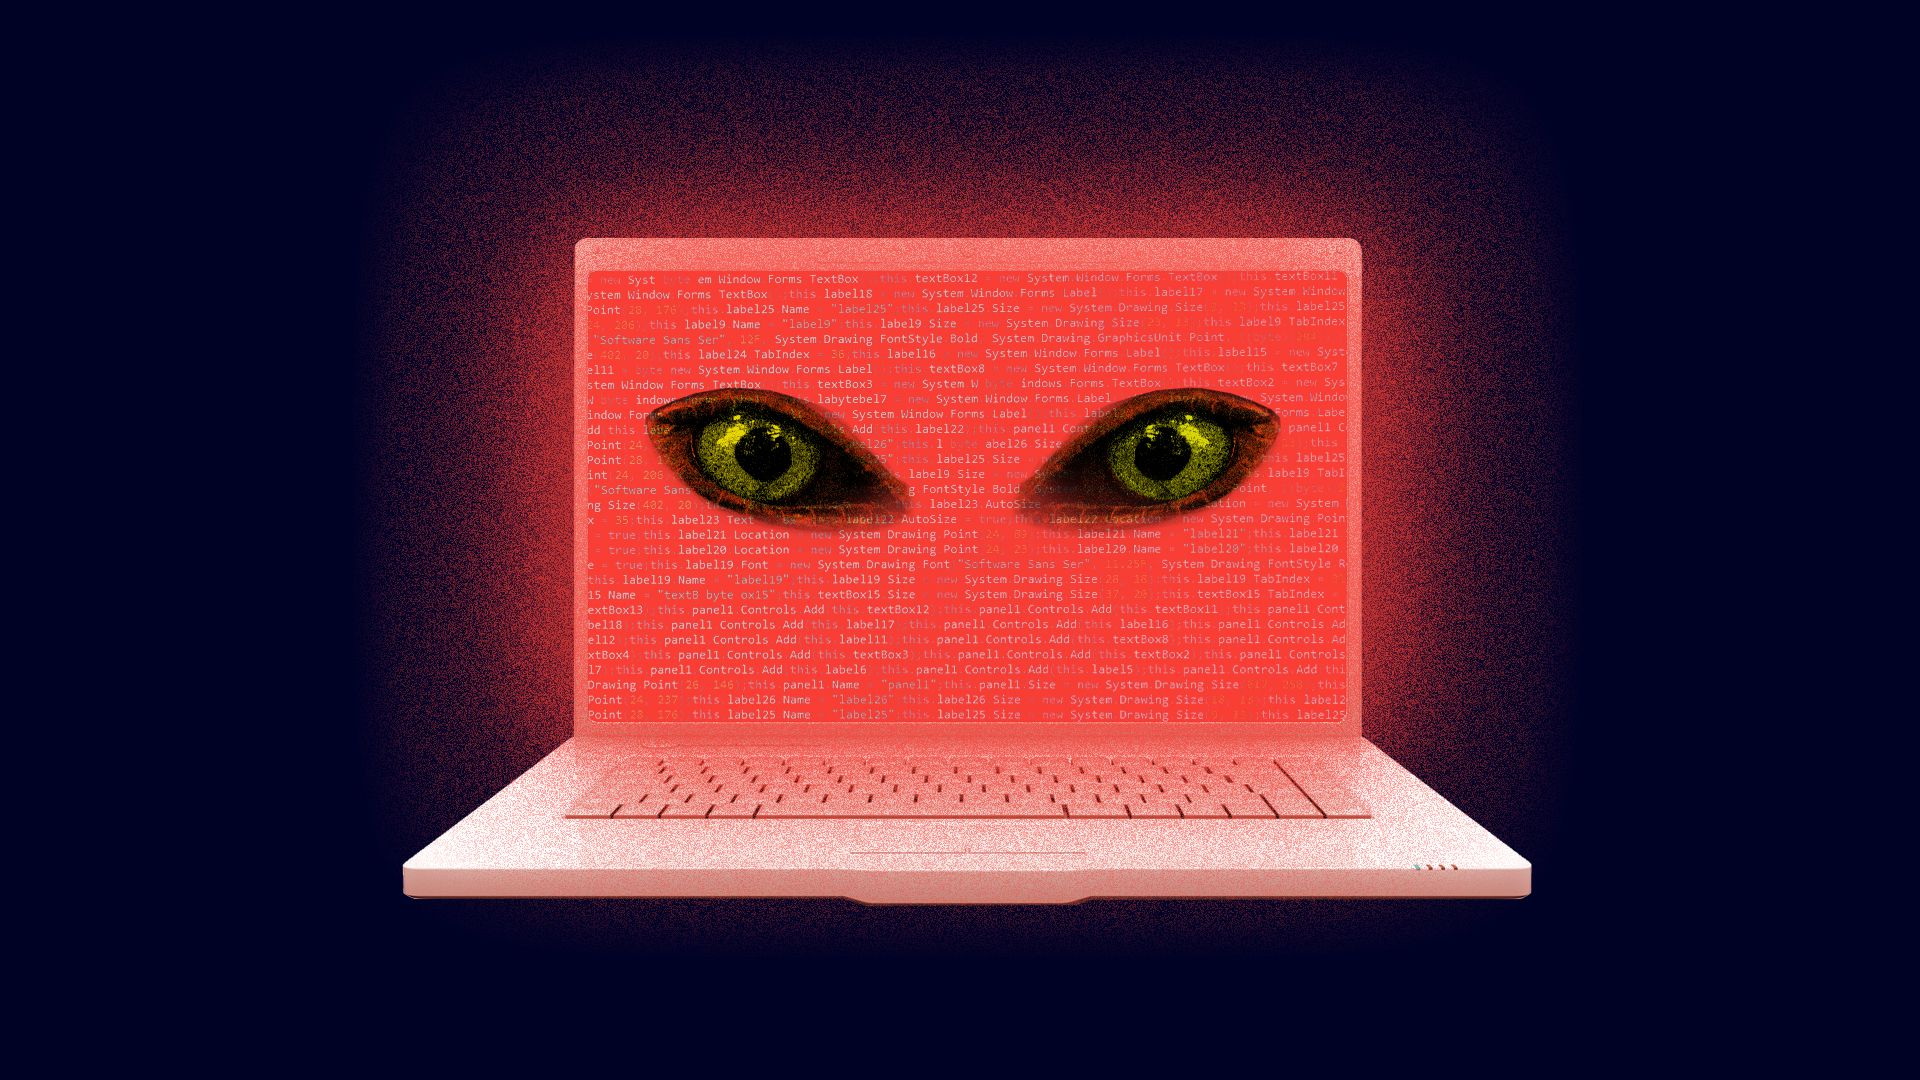 A laptop displays menacing eyes on a red screen.